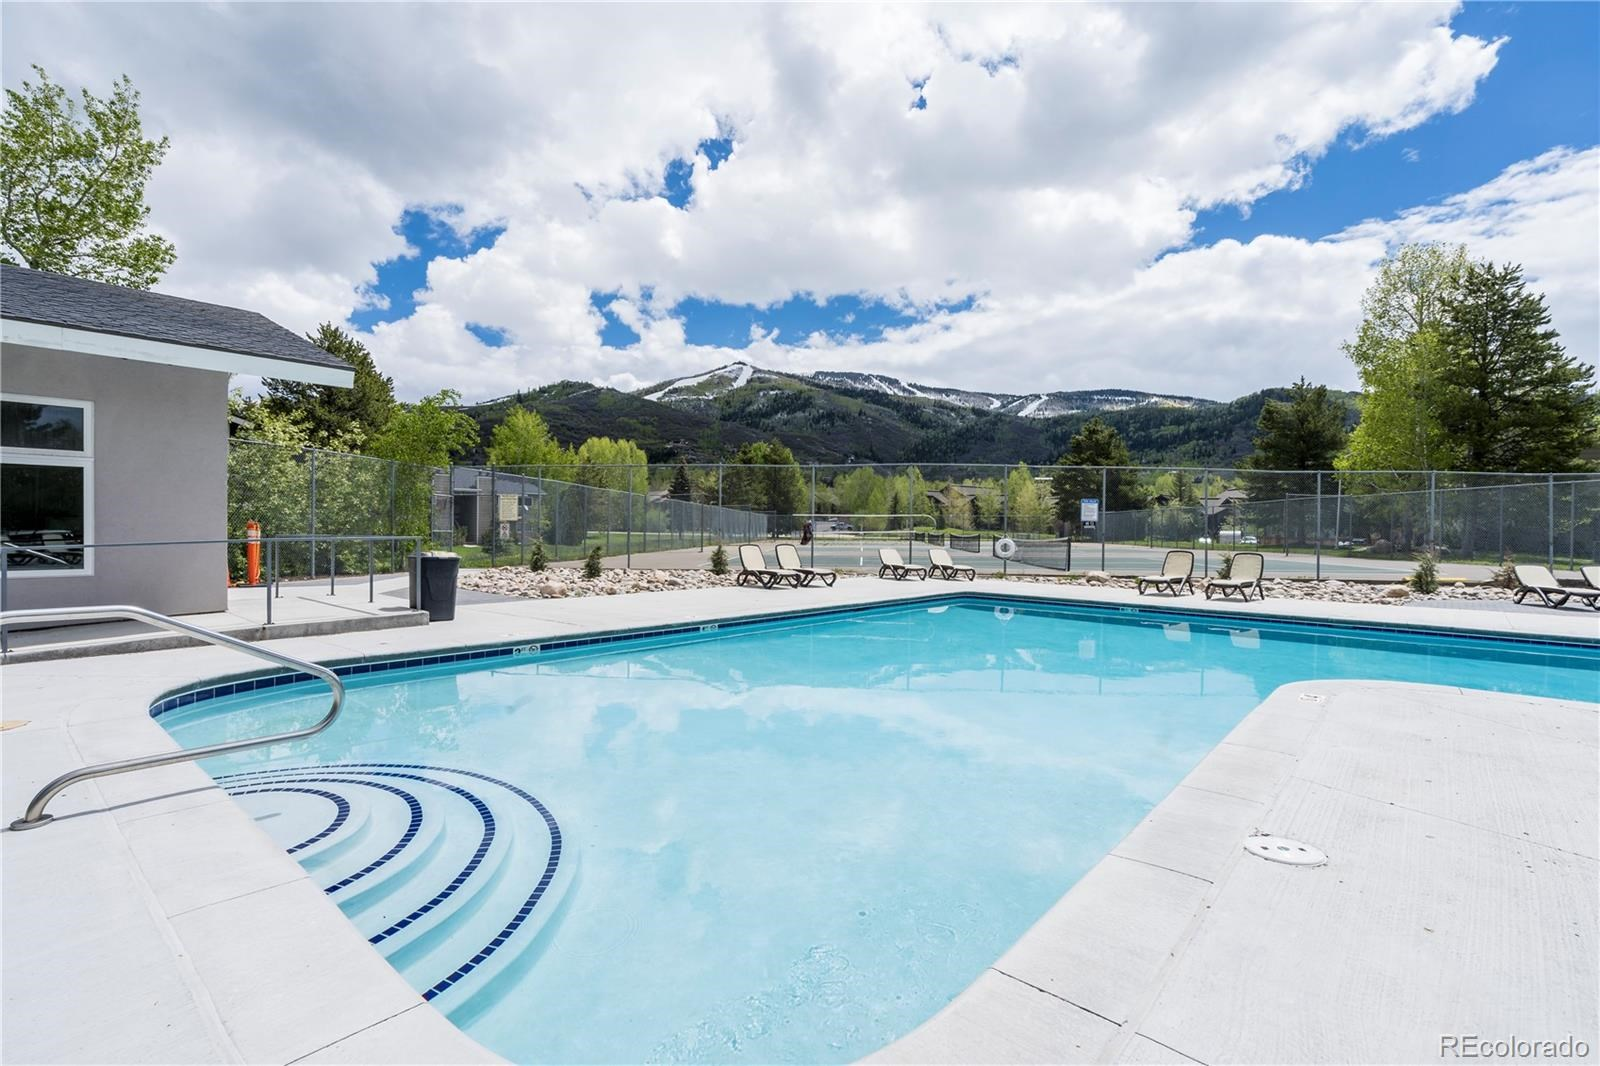 MLS# 5203269 - 13 - 1320 Athens Plaza #4, Steamboat Springs, CO 80487